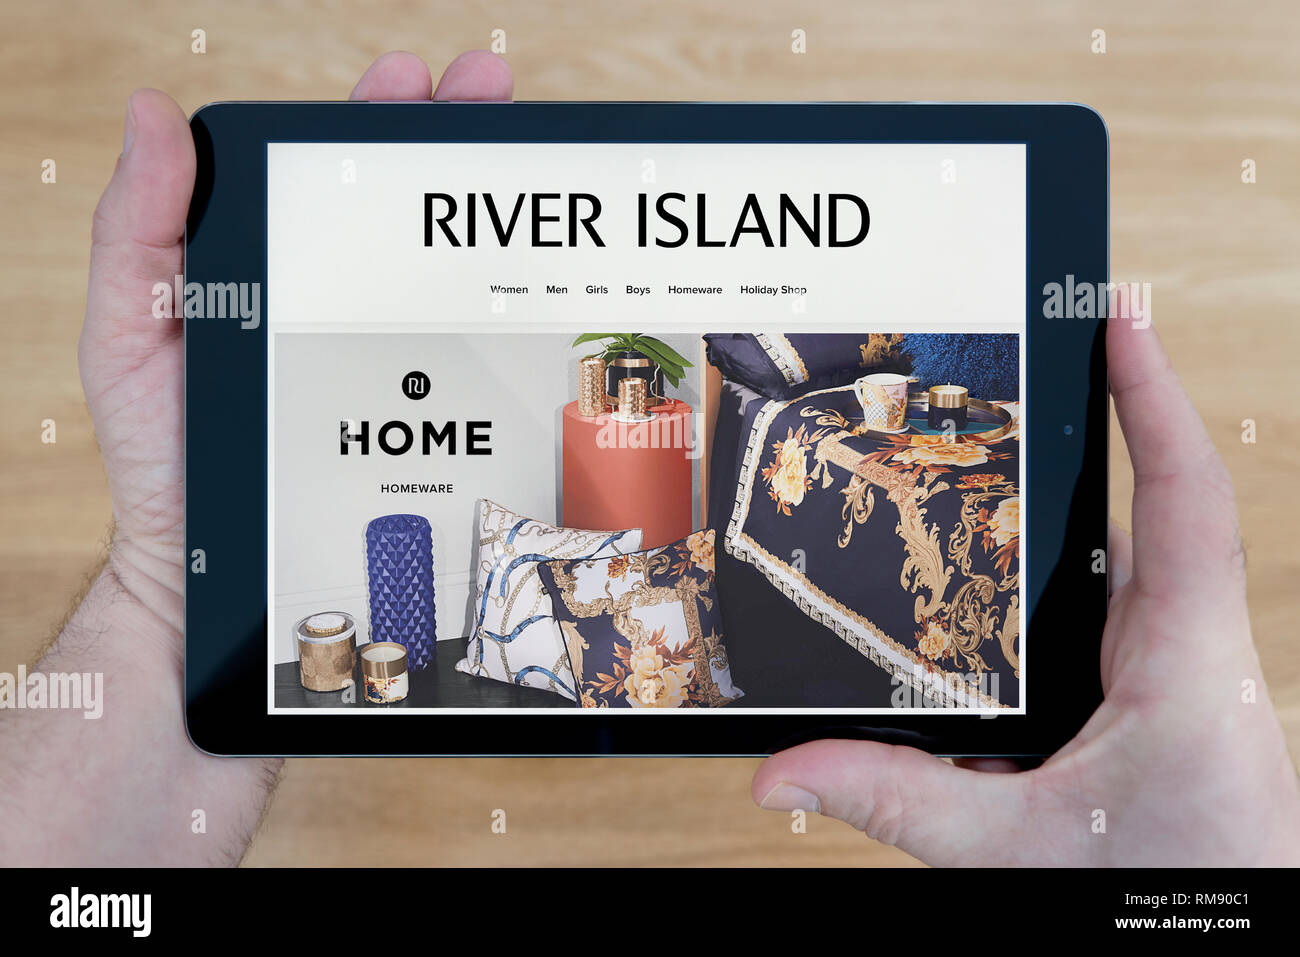 A man looks at the River Island website on his iPad tablet device, shot against a wooden table top background (Editorial use only). Stock Photo